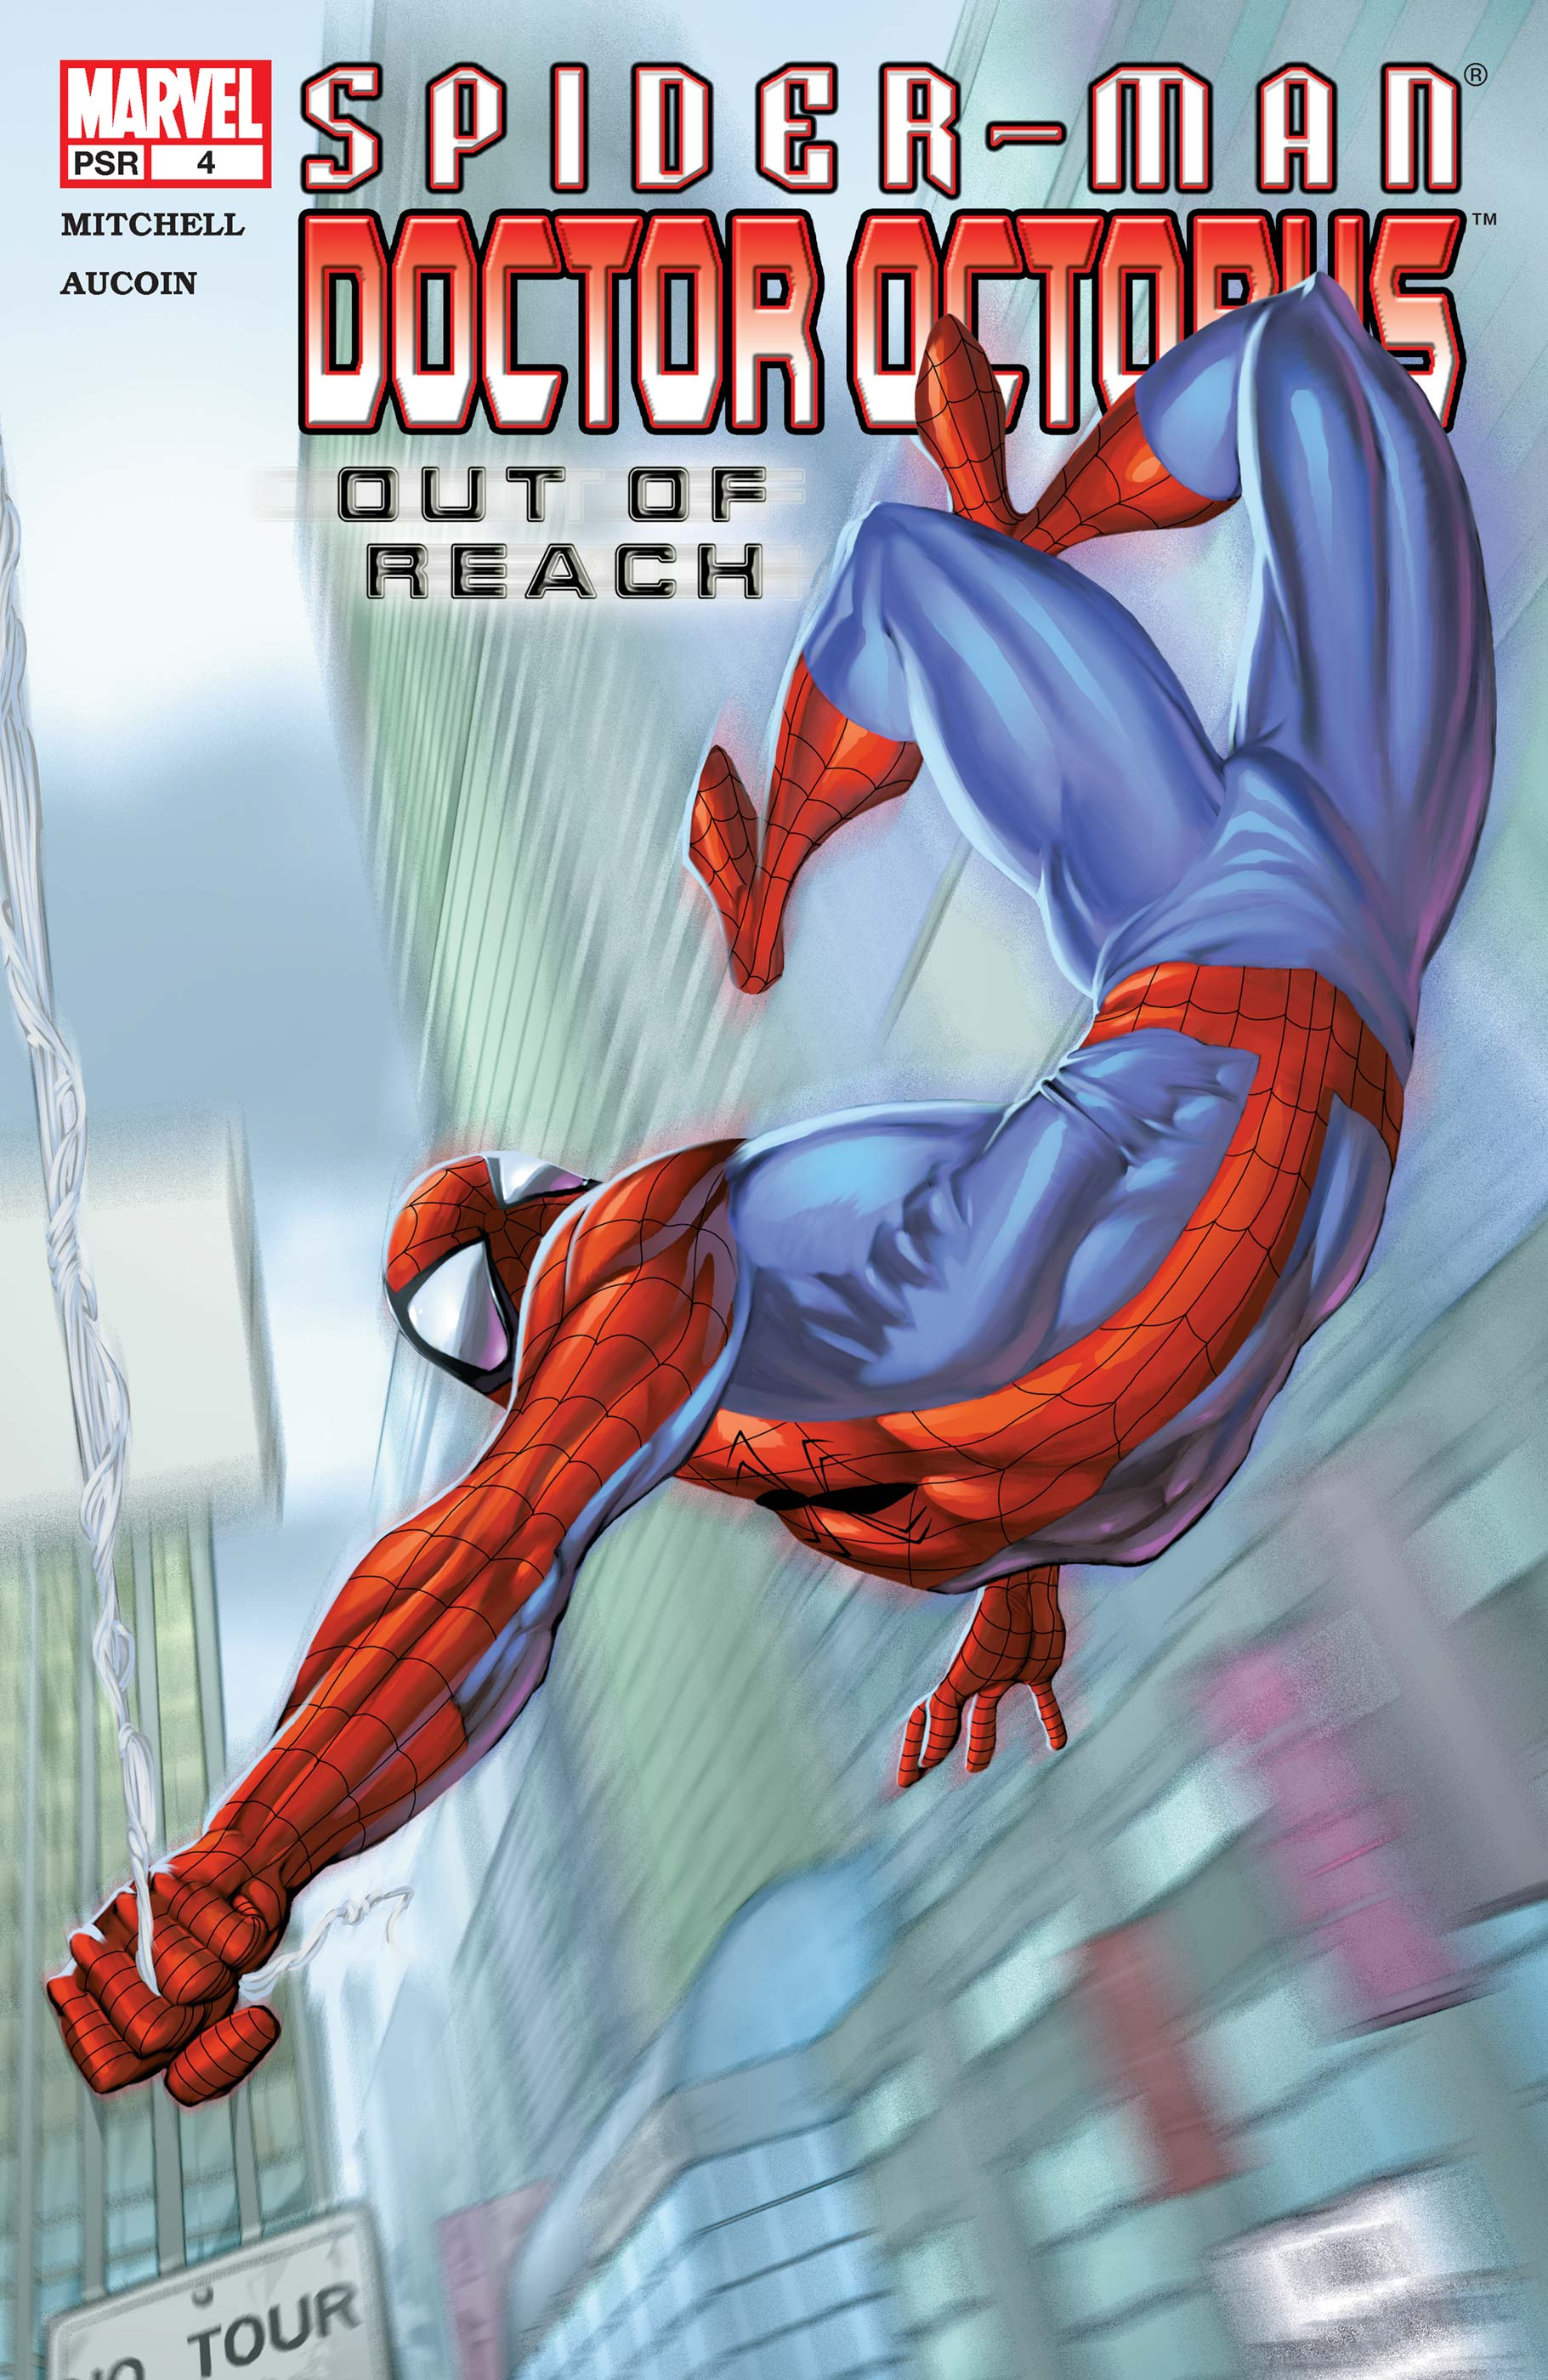 Spider-Man/Doctor Octopus: Out of Reach Vol 1 4